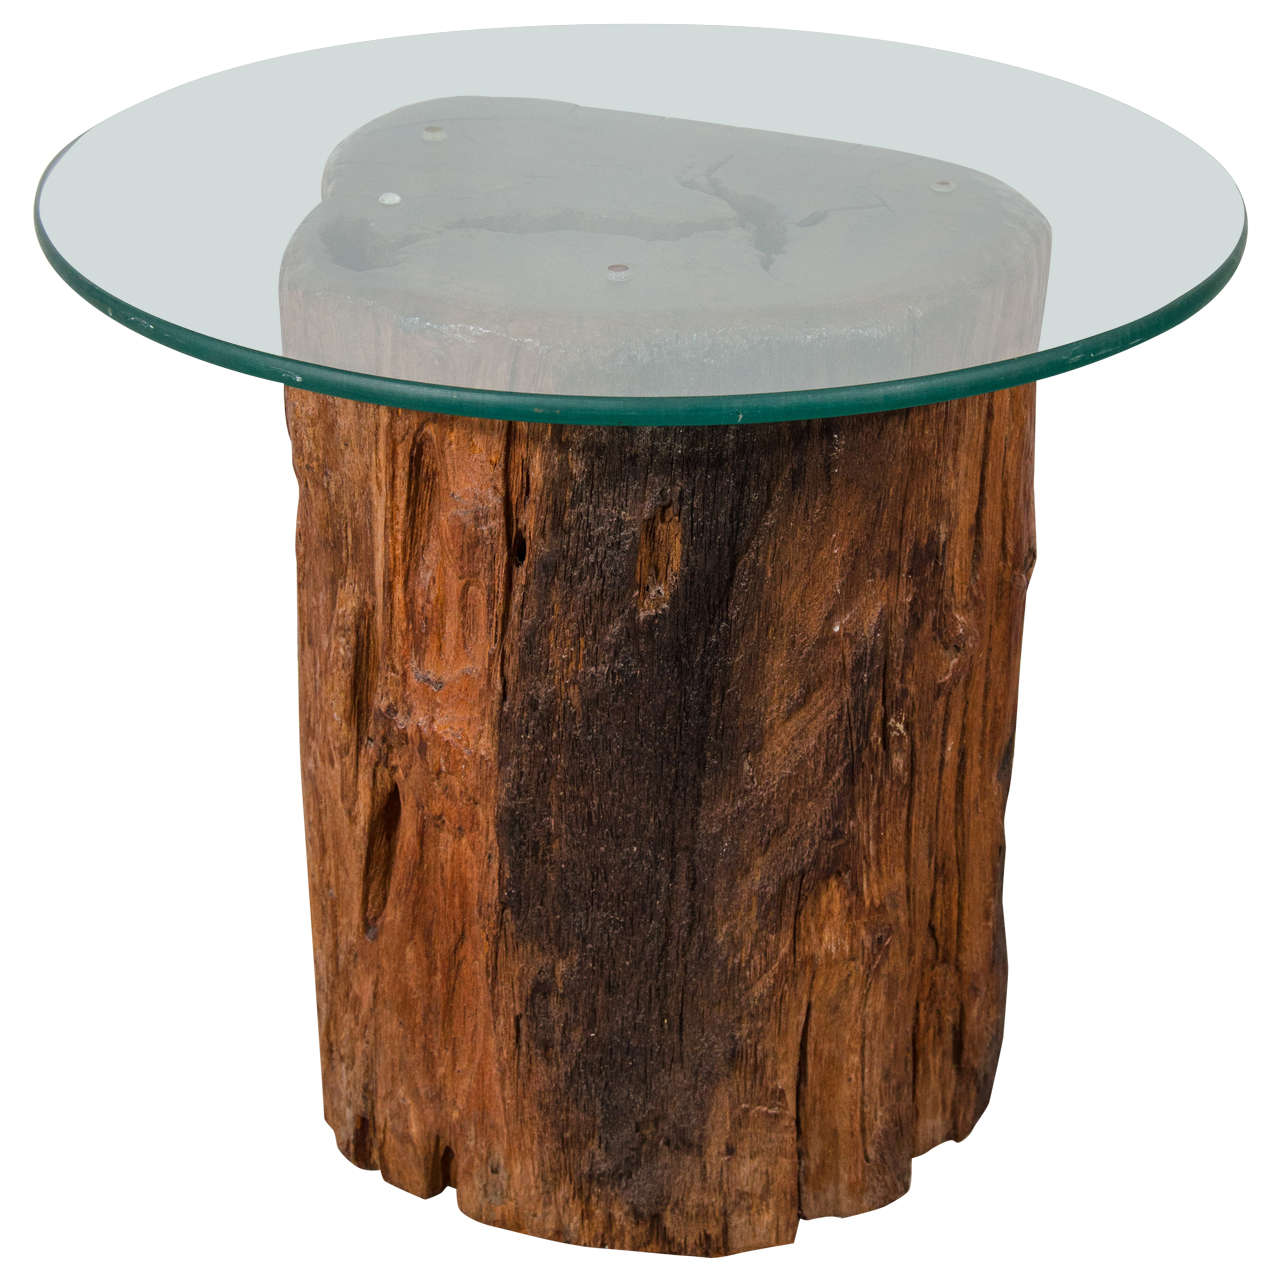 antique petrified tree trunk side table with glass top